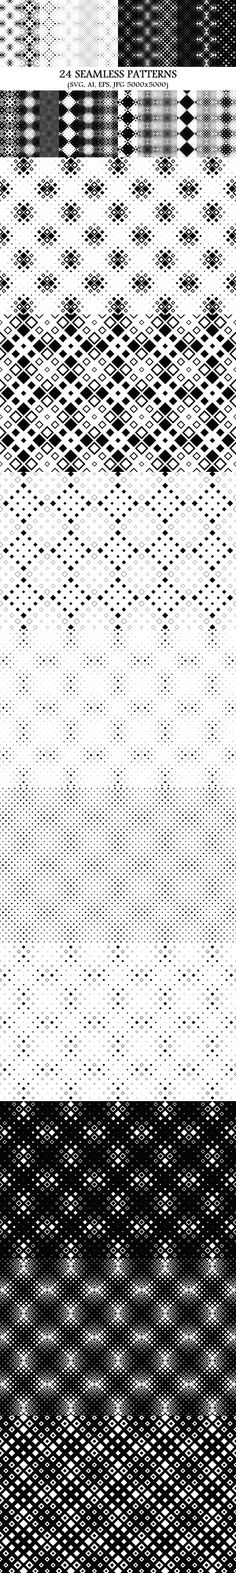 24 Seamless Square Patterns #BackgroundCollection #PremiumBackgrounds #AbstractGraphics #PremiumBackground #geometric #cheap #backgrounds #SeamlessPattern #CheapVectorBackground #squarepatterns #CheapVectorGraphics #GeometricBackground #GeometricPattern #patterns #CheapPatterns #PremiumVectorGraphicDesign #CheapPattern #CheapVectorBackground #monochrome Logo Background, Geometric Background, Background Patterns, Monochrome Pattern, Geometric Pattern Design, Square Patterns, Pattern And Decoration, Vector Pattern, School Design